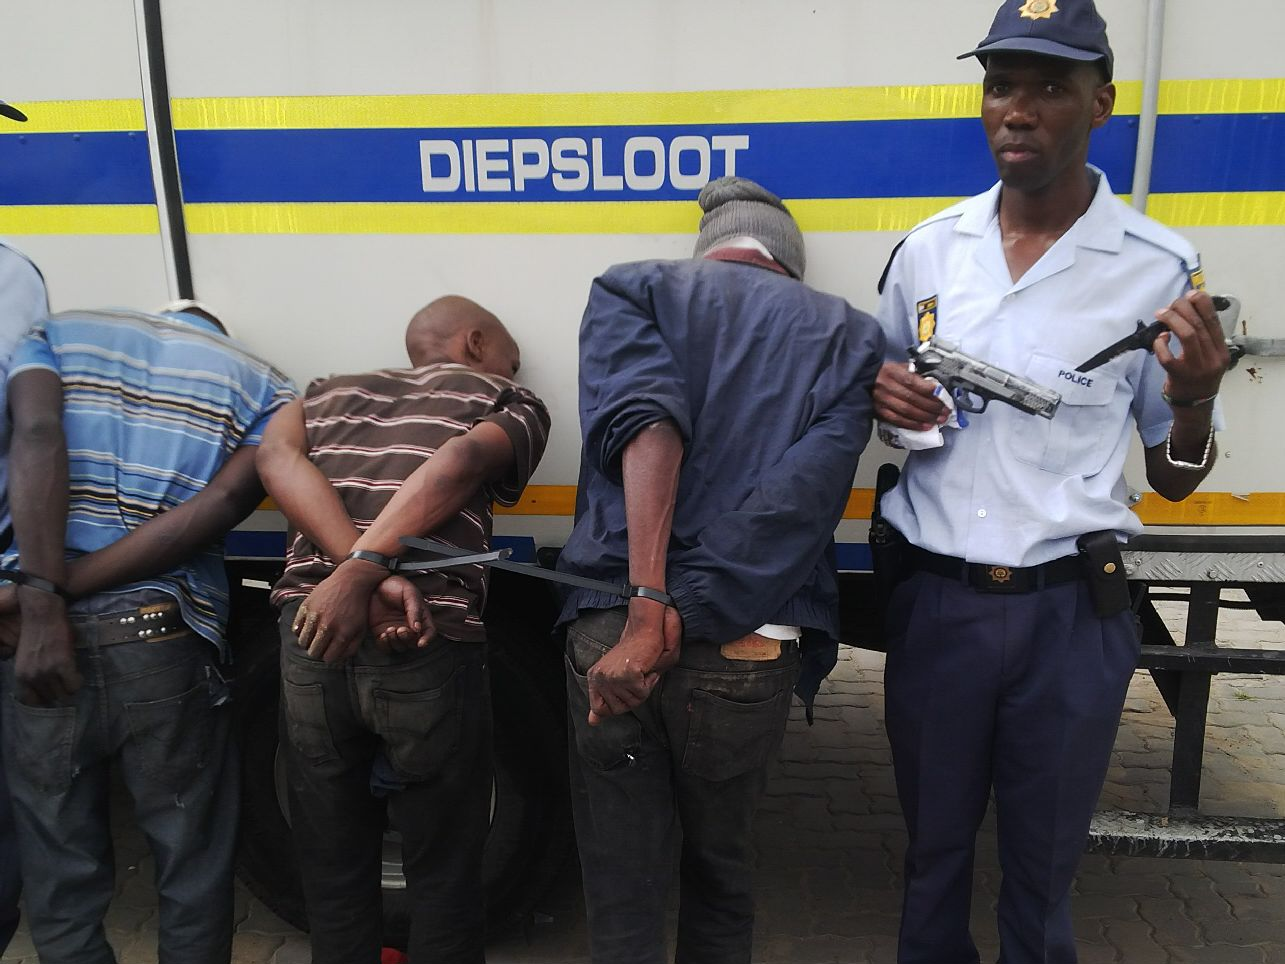 Three caught for armed robbery in Diepsloot